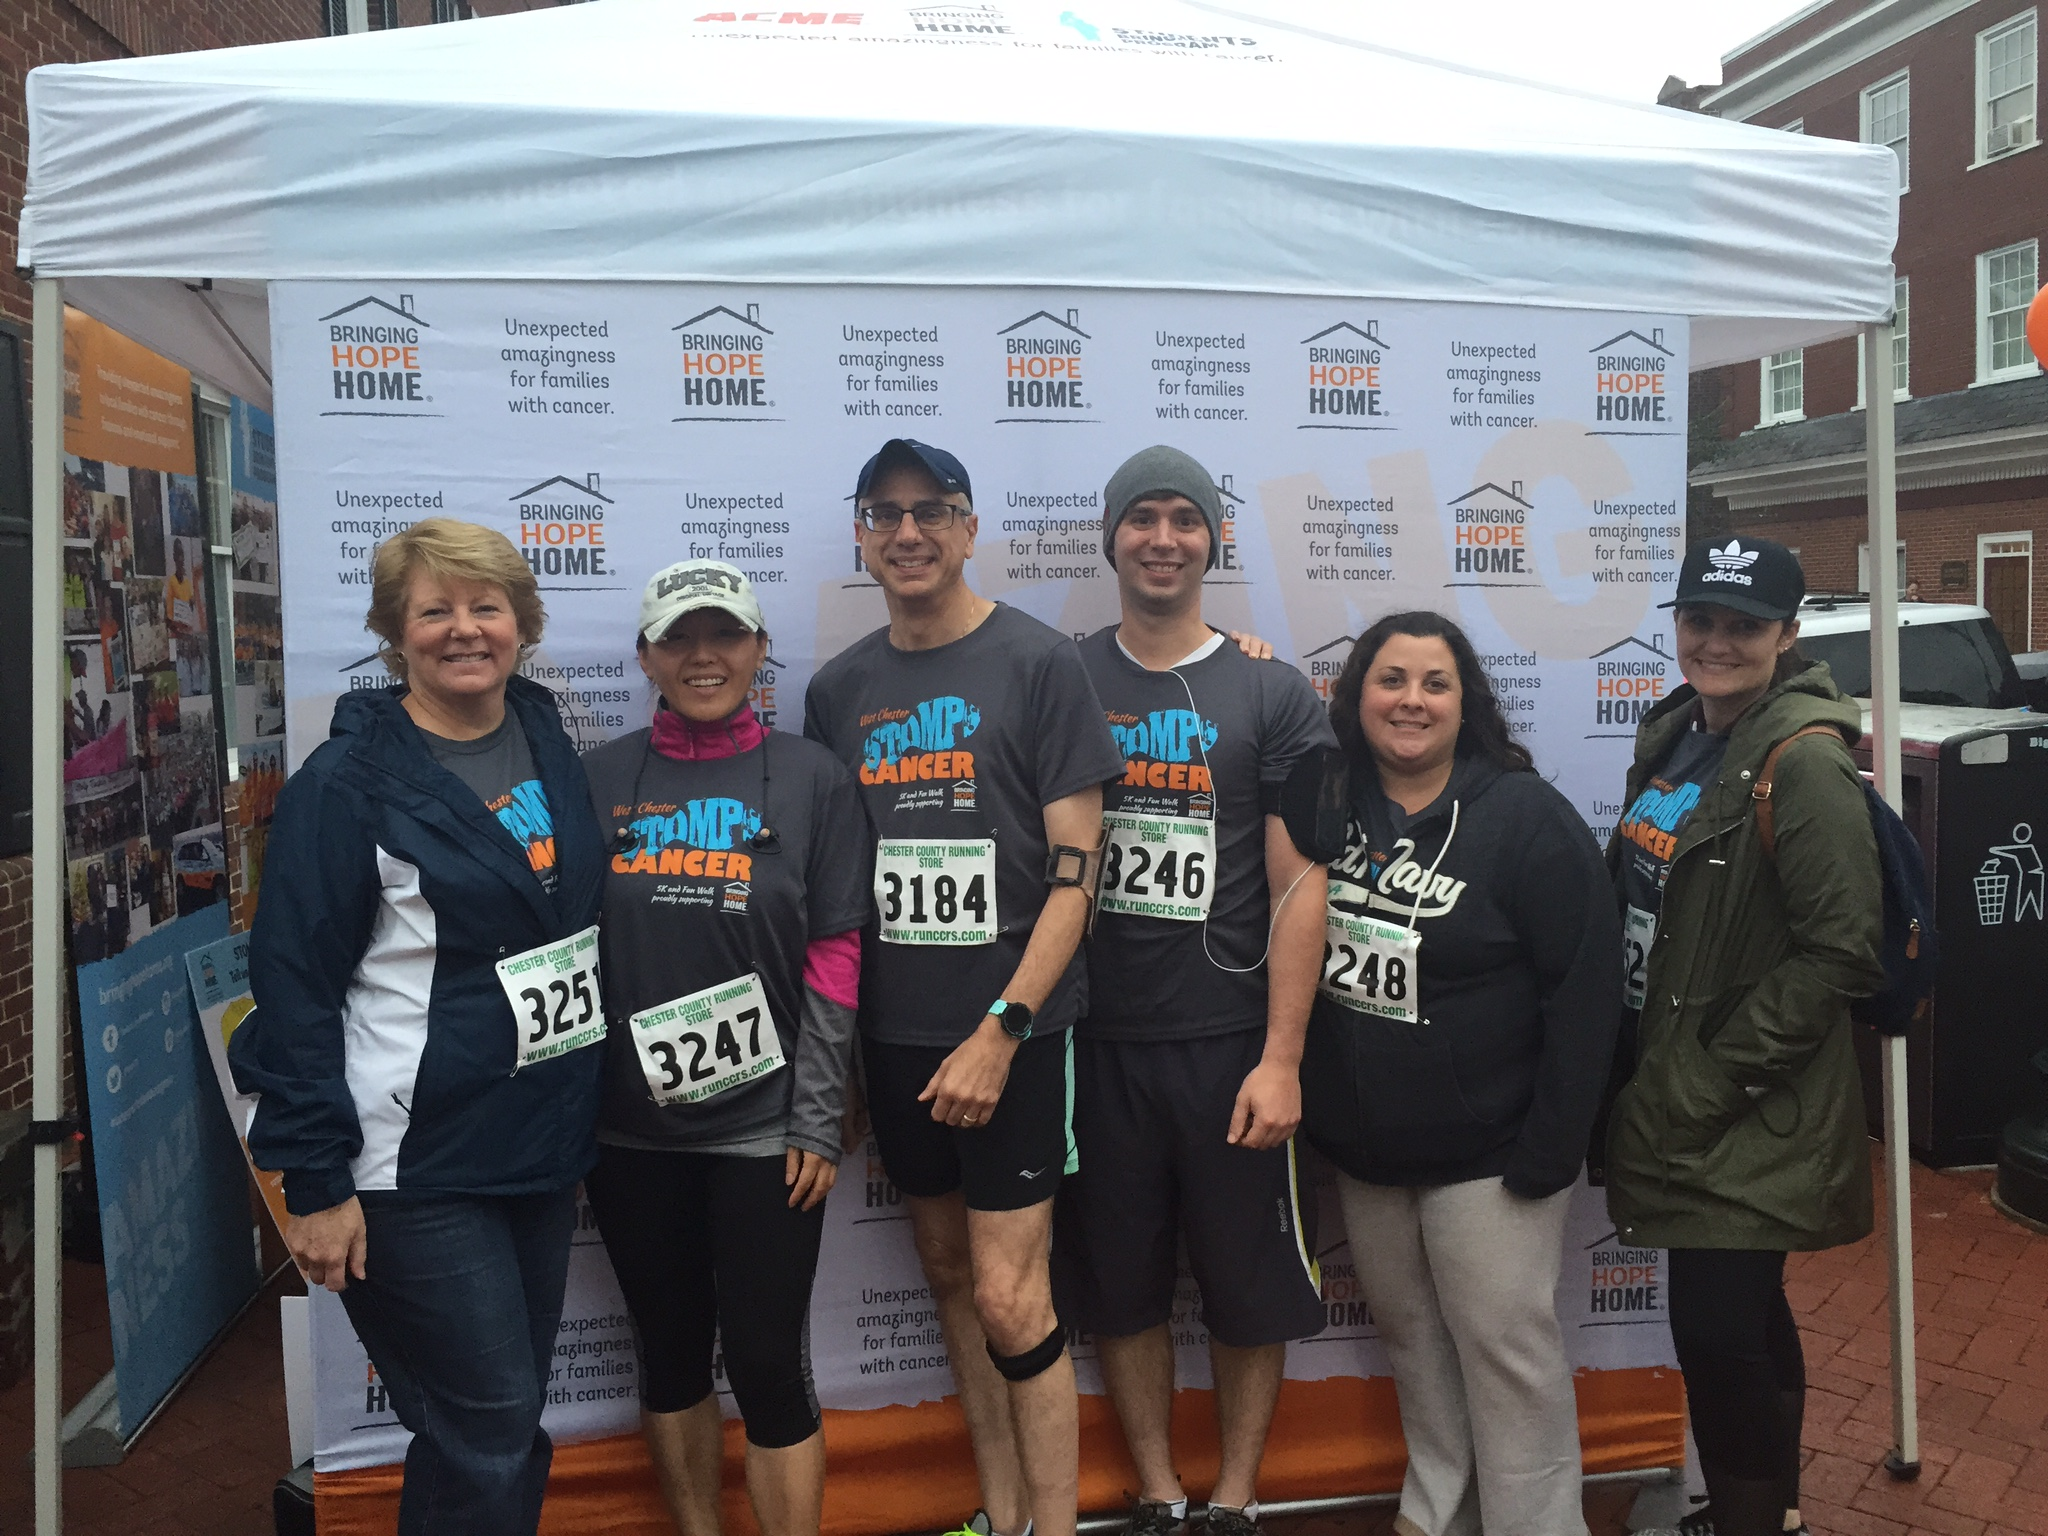 Rainer in 5k Run for Cancer